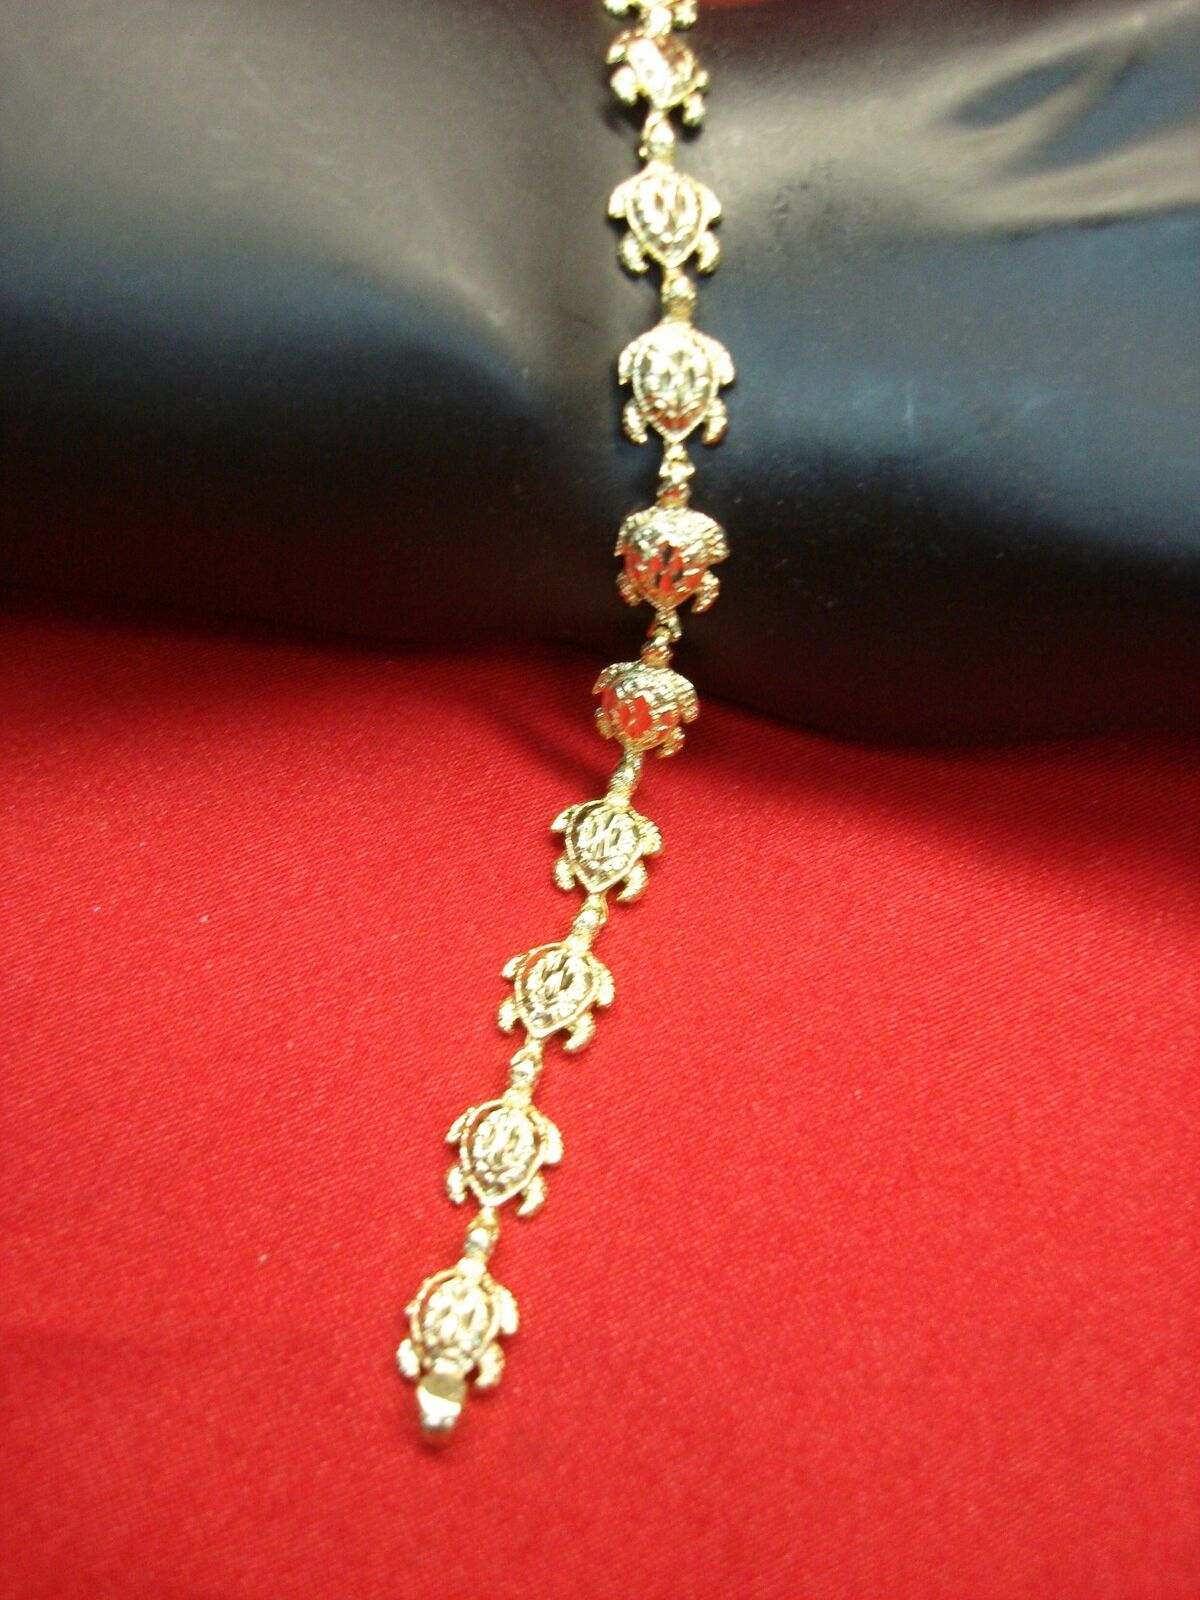 14K SOLID YELLOW gold SEA TURTLE BRACE - 13 DETAILED TURTLES ALL IN ROW - NICE